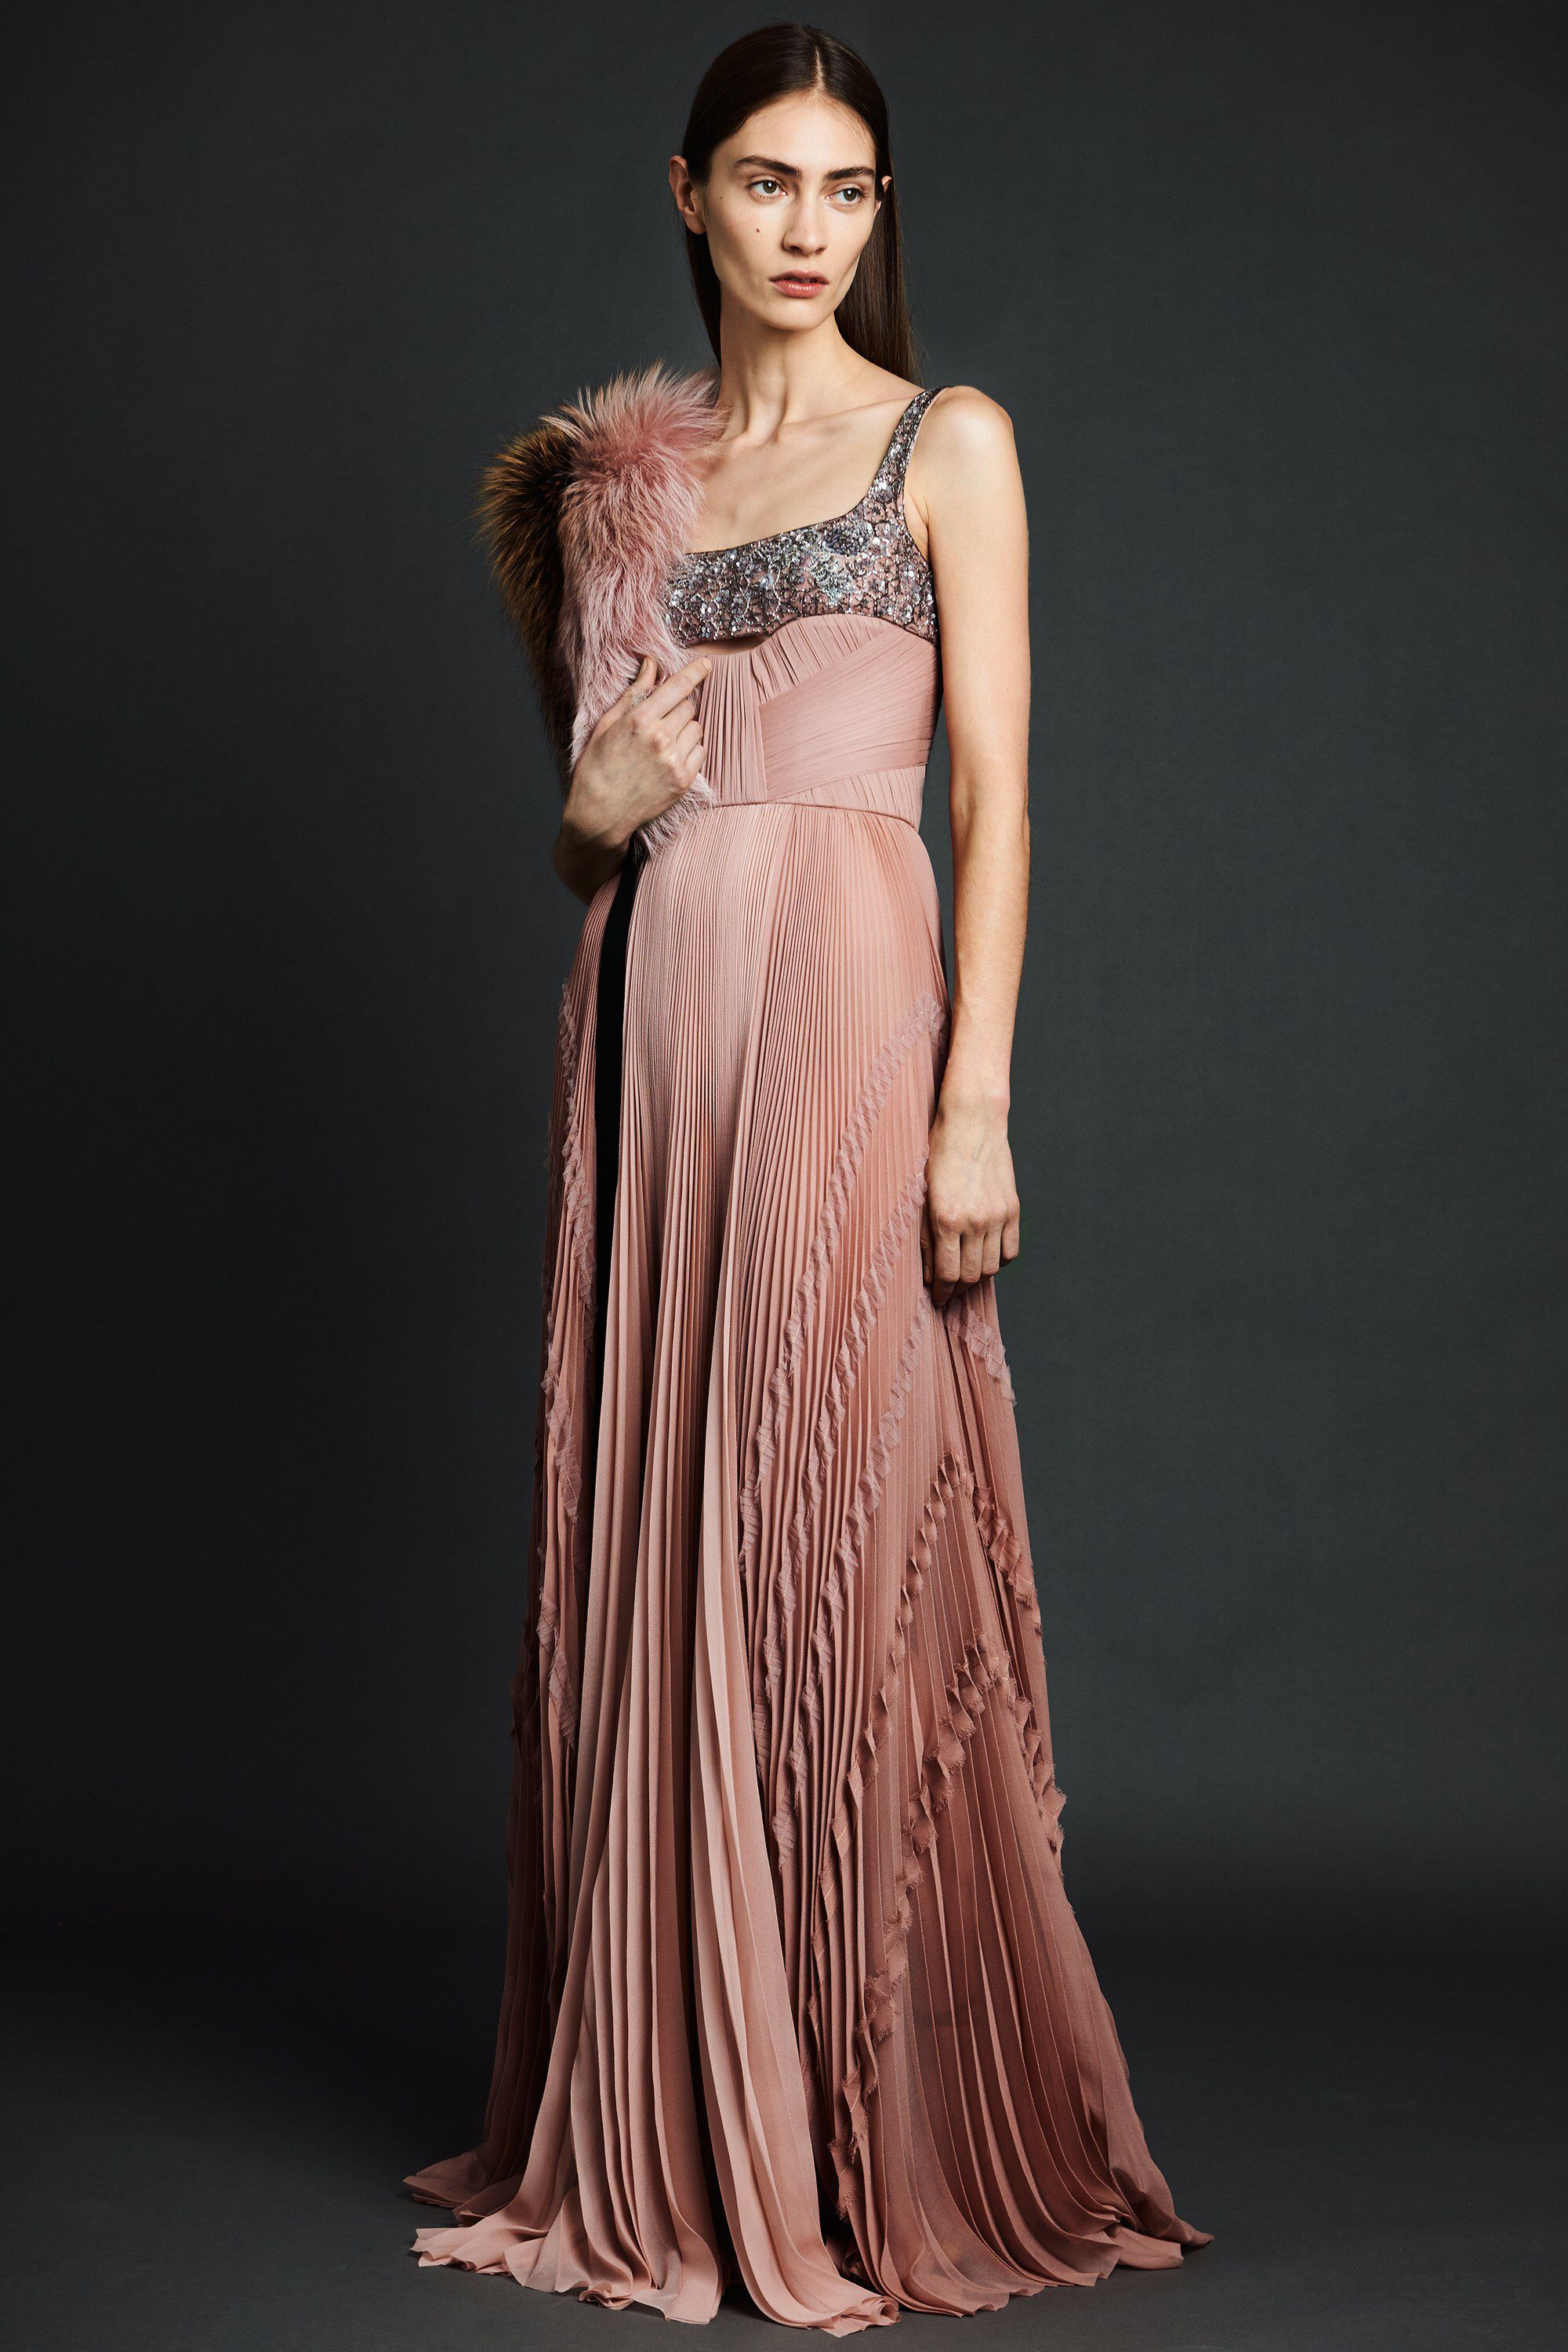 J. Mendel Pre-Fall 2017 Fashion Show | Gowns, Beautiful gowns and ...